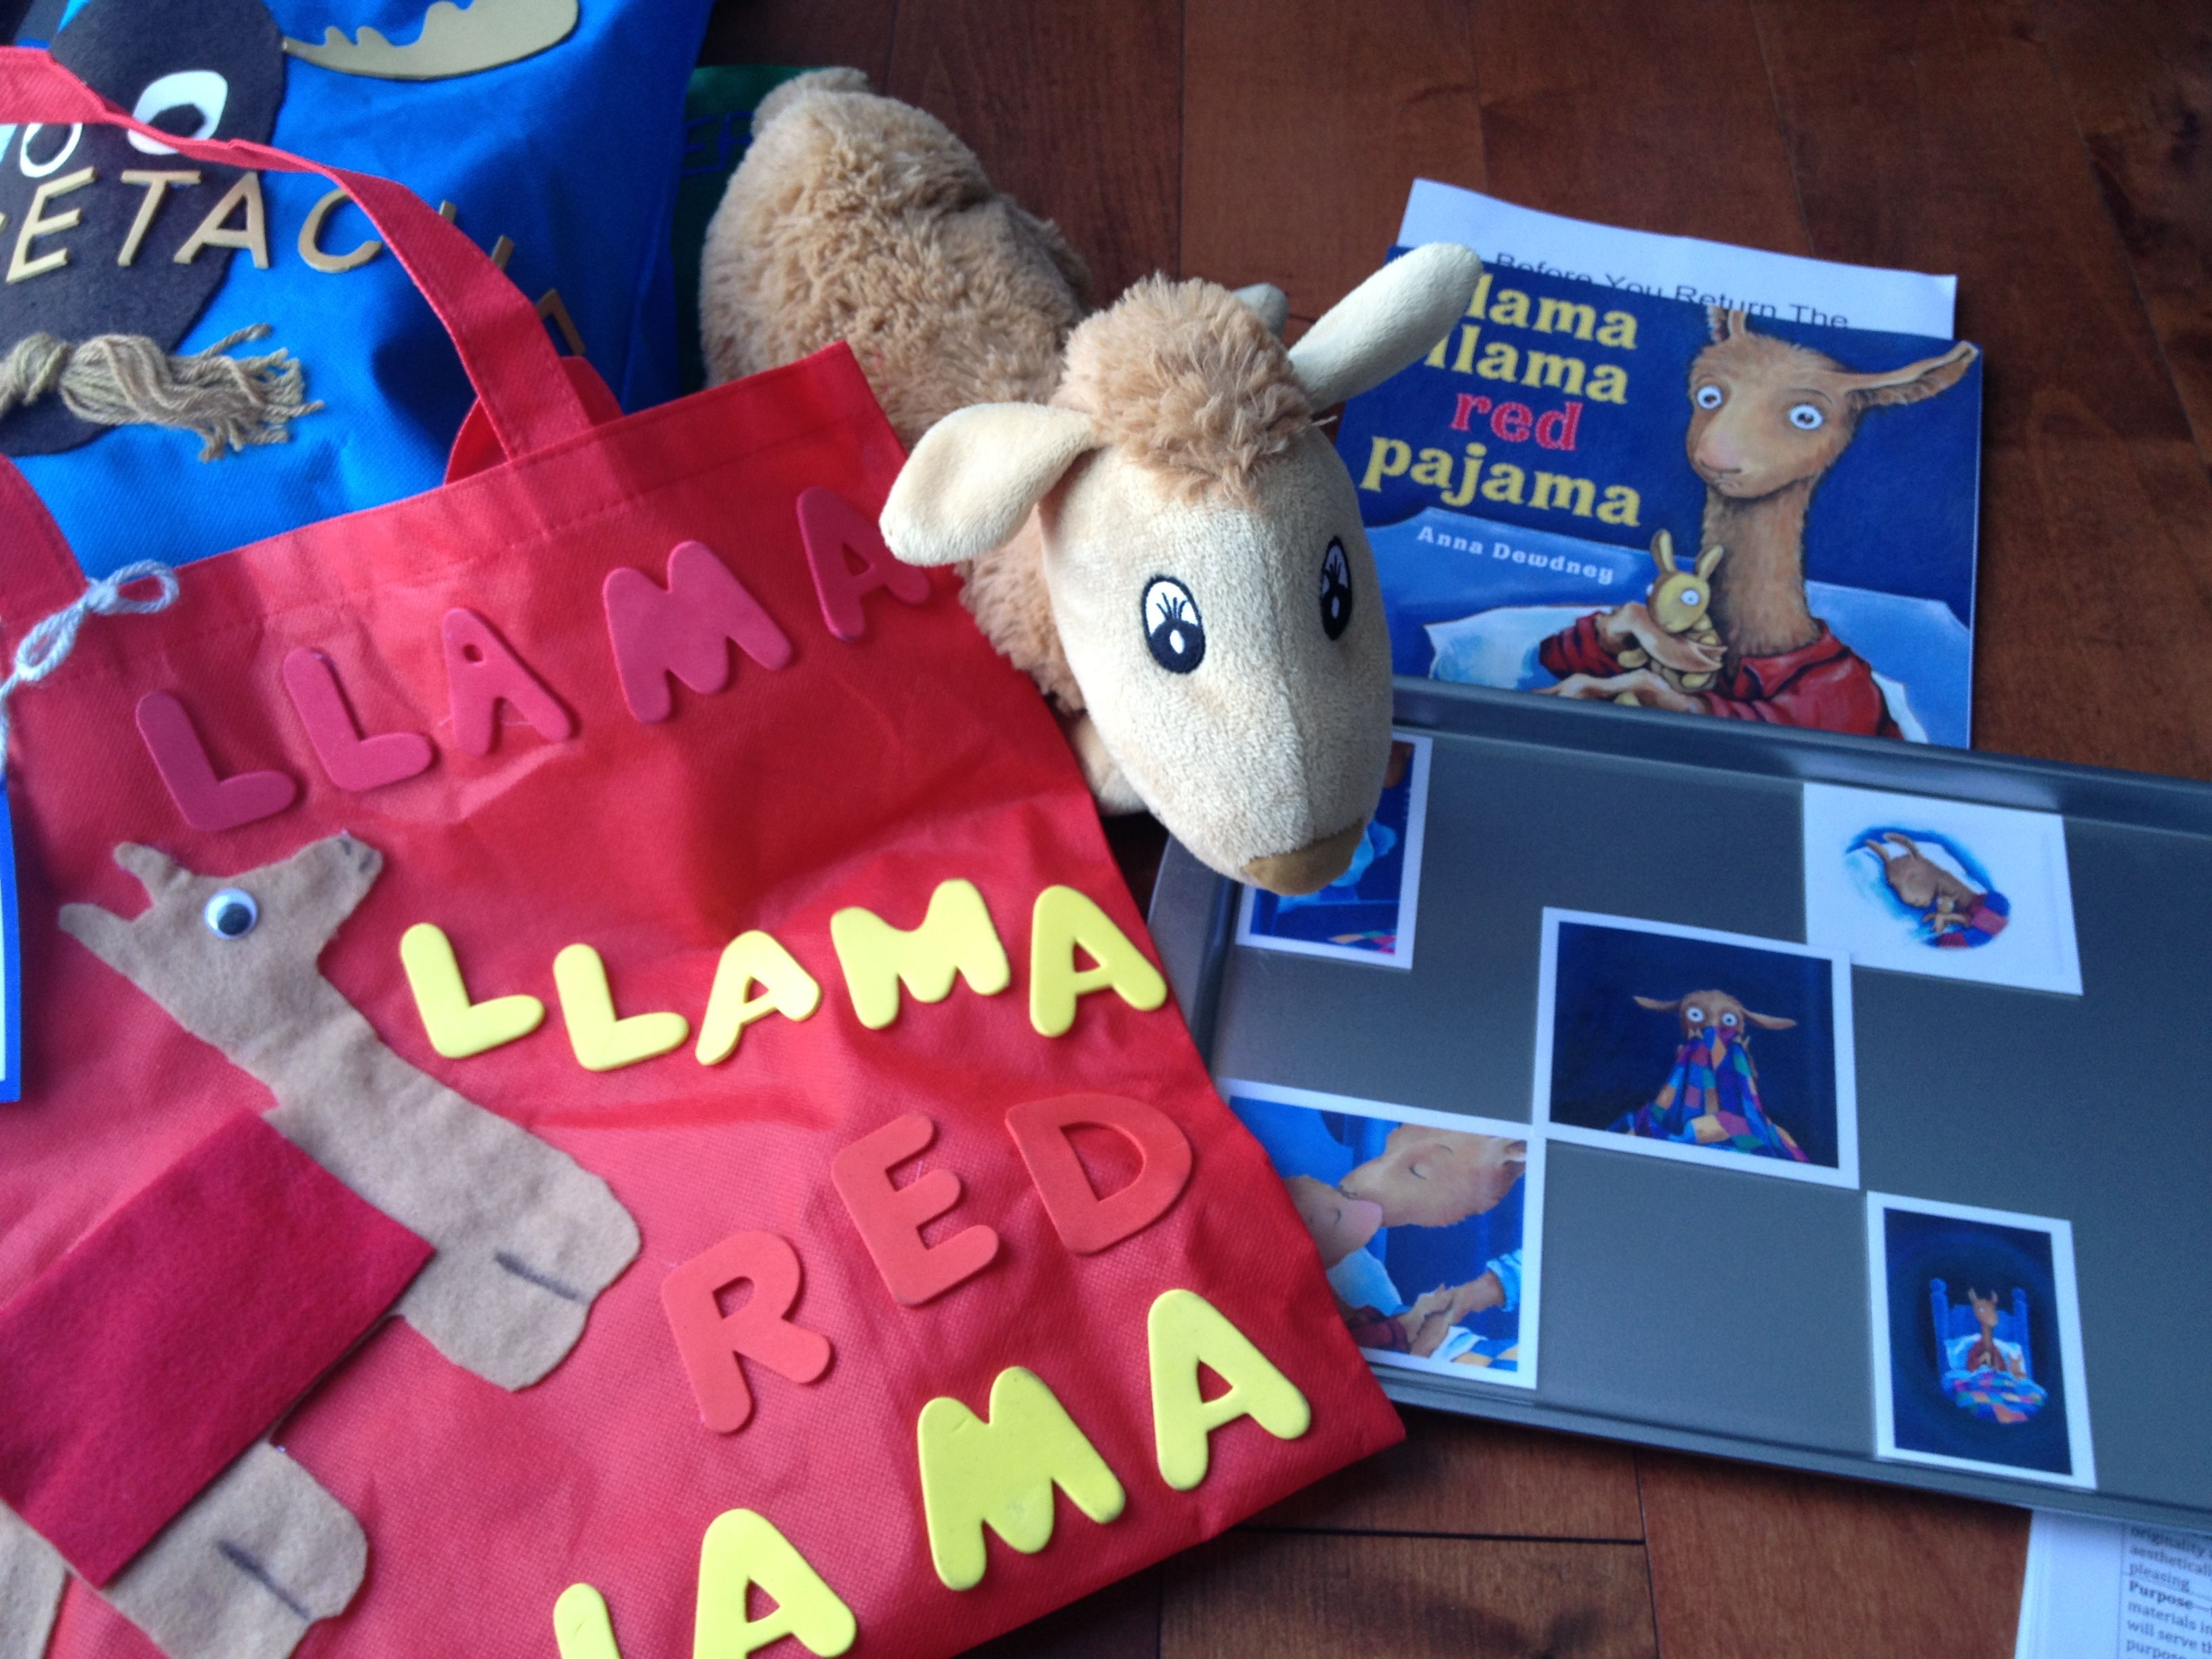 Llama Llama Red Pajama Reading Activity Based On Emotions